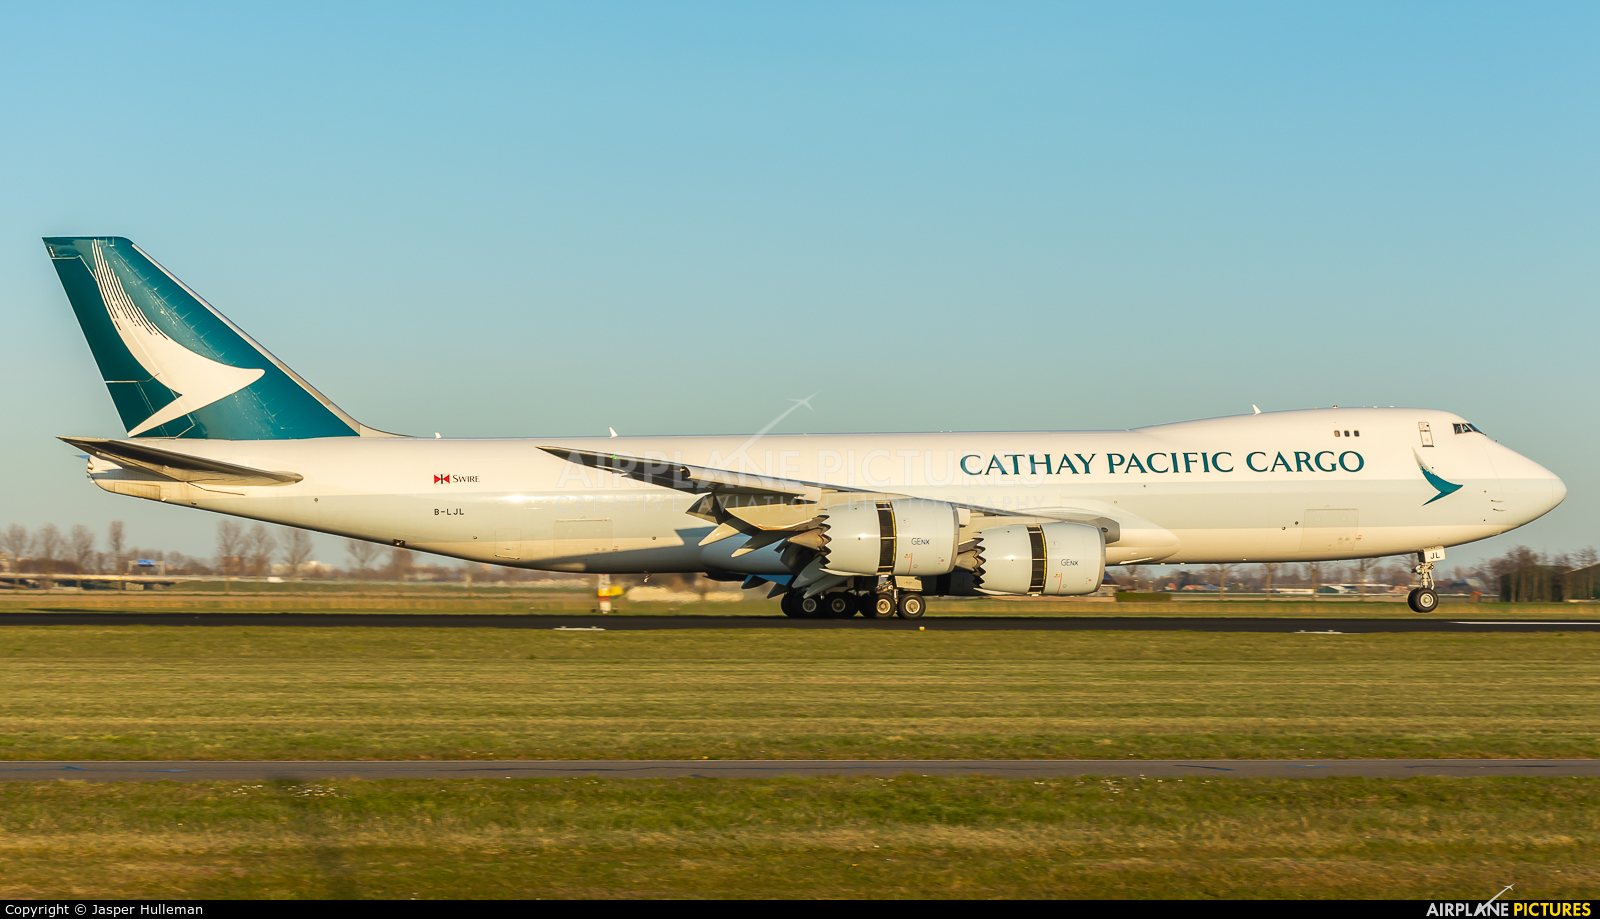 Cathay Pacific Cargo B-LJL aircraft at Amsterdam - Schiphol